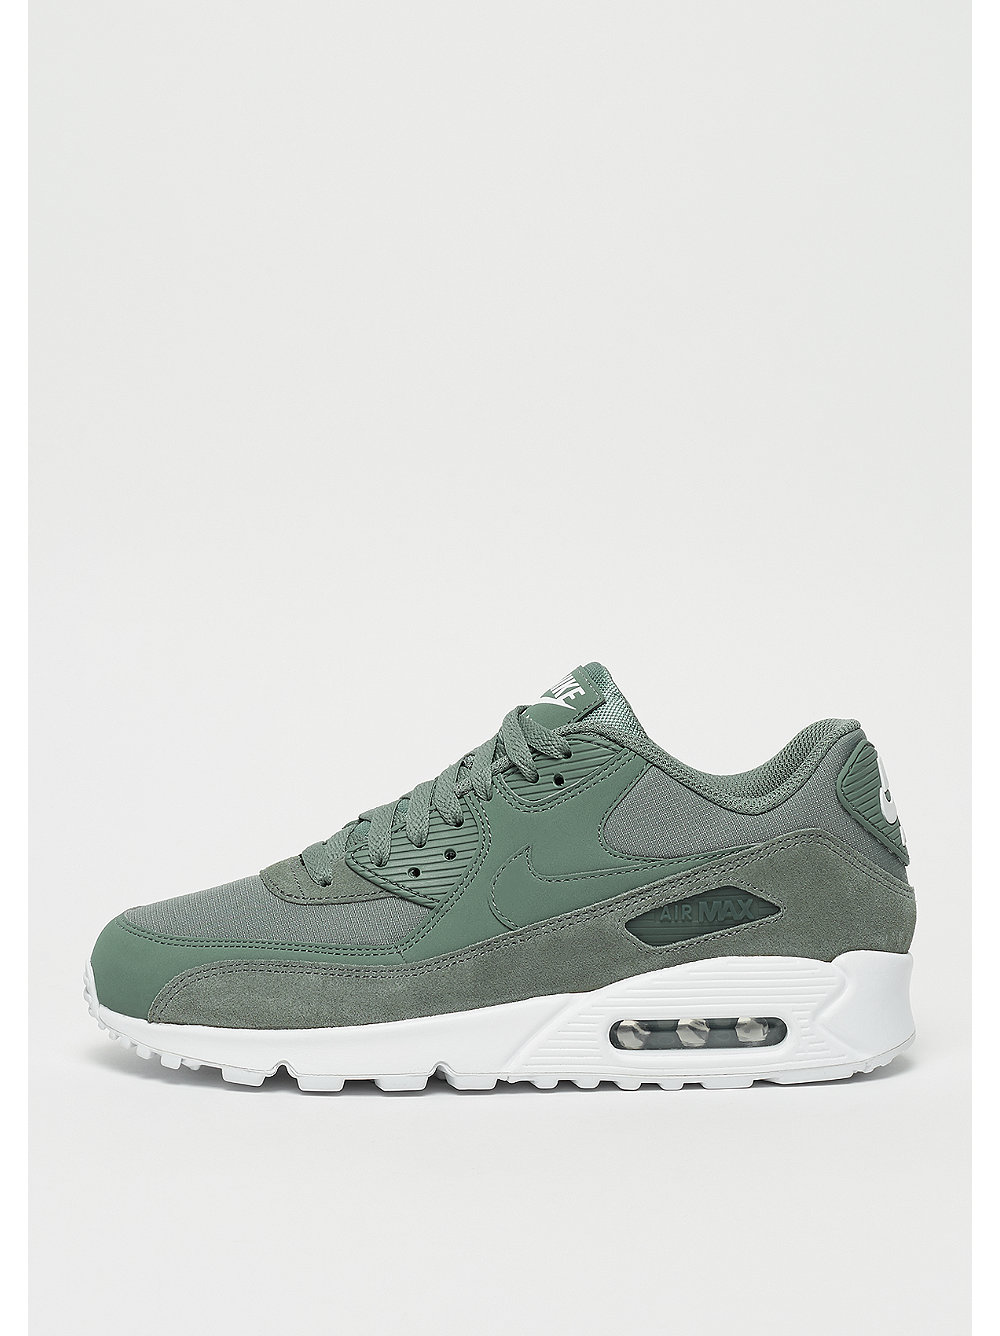 detailed look 025c3 3a23d ... spain nike air max 90 essential clay green clay green white 5f7c8 bfe66